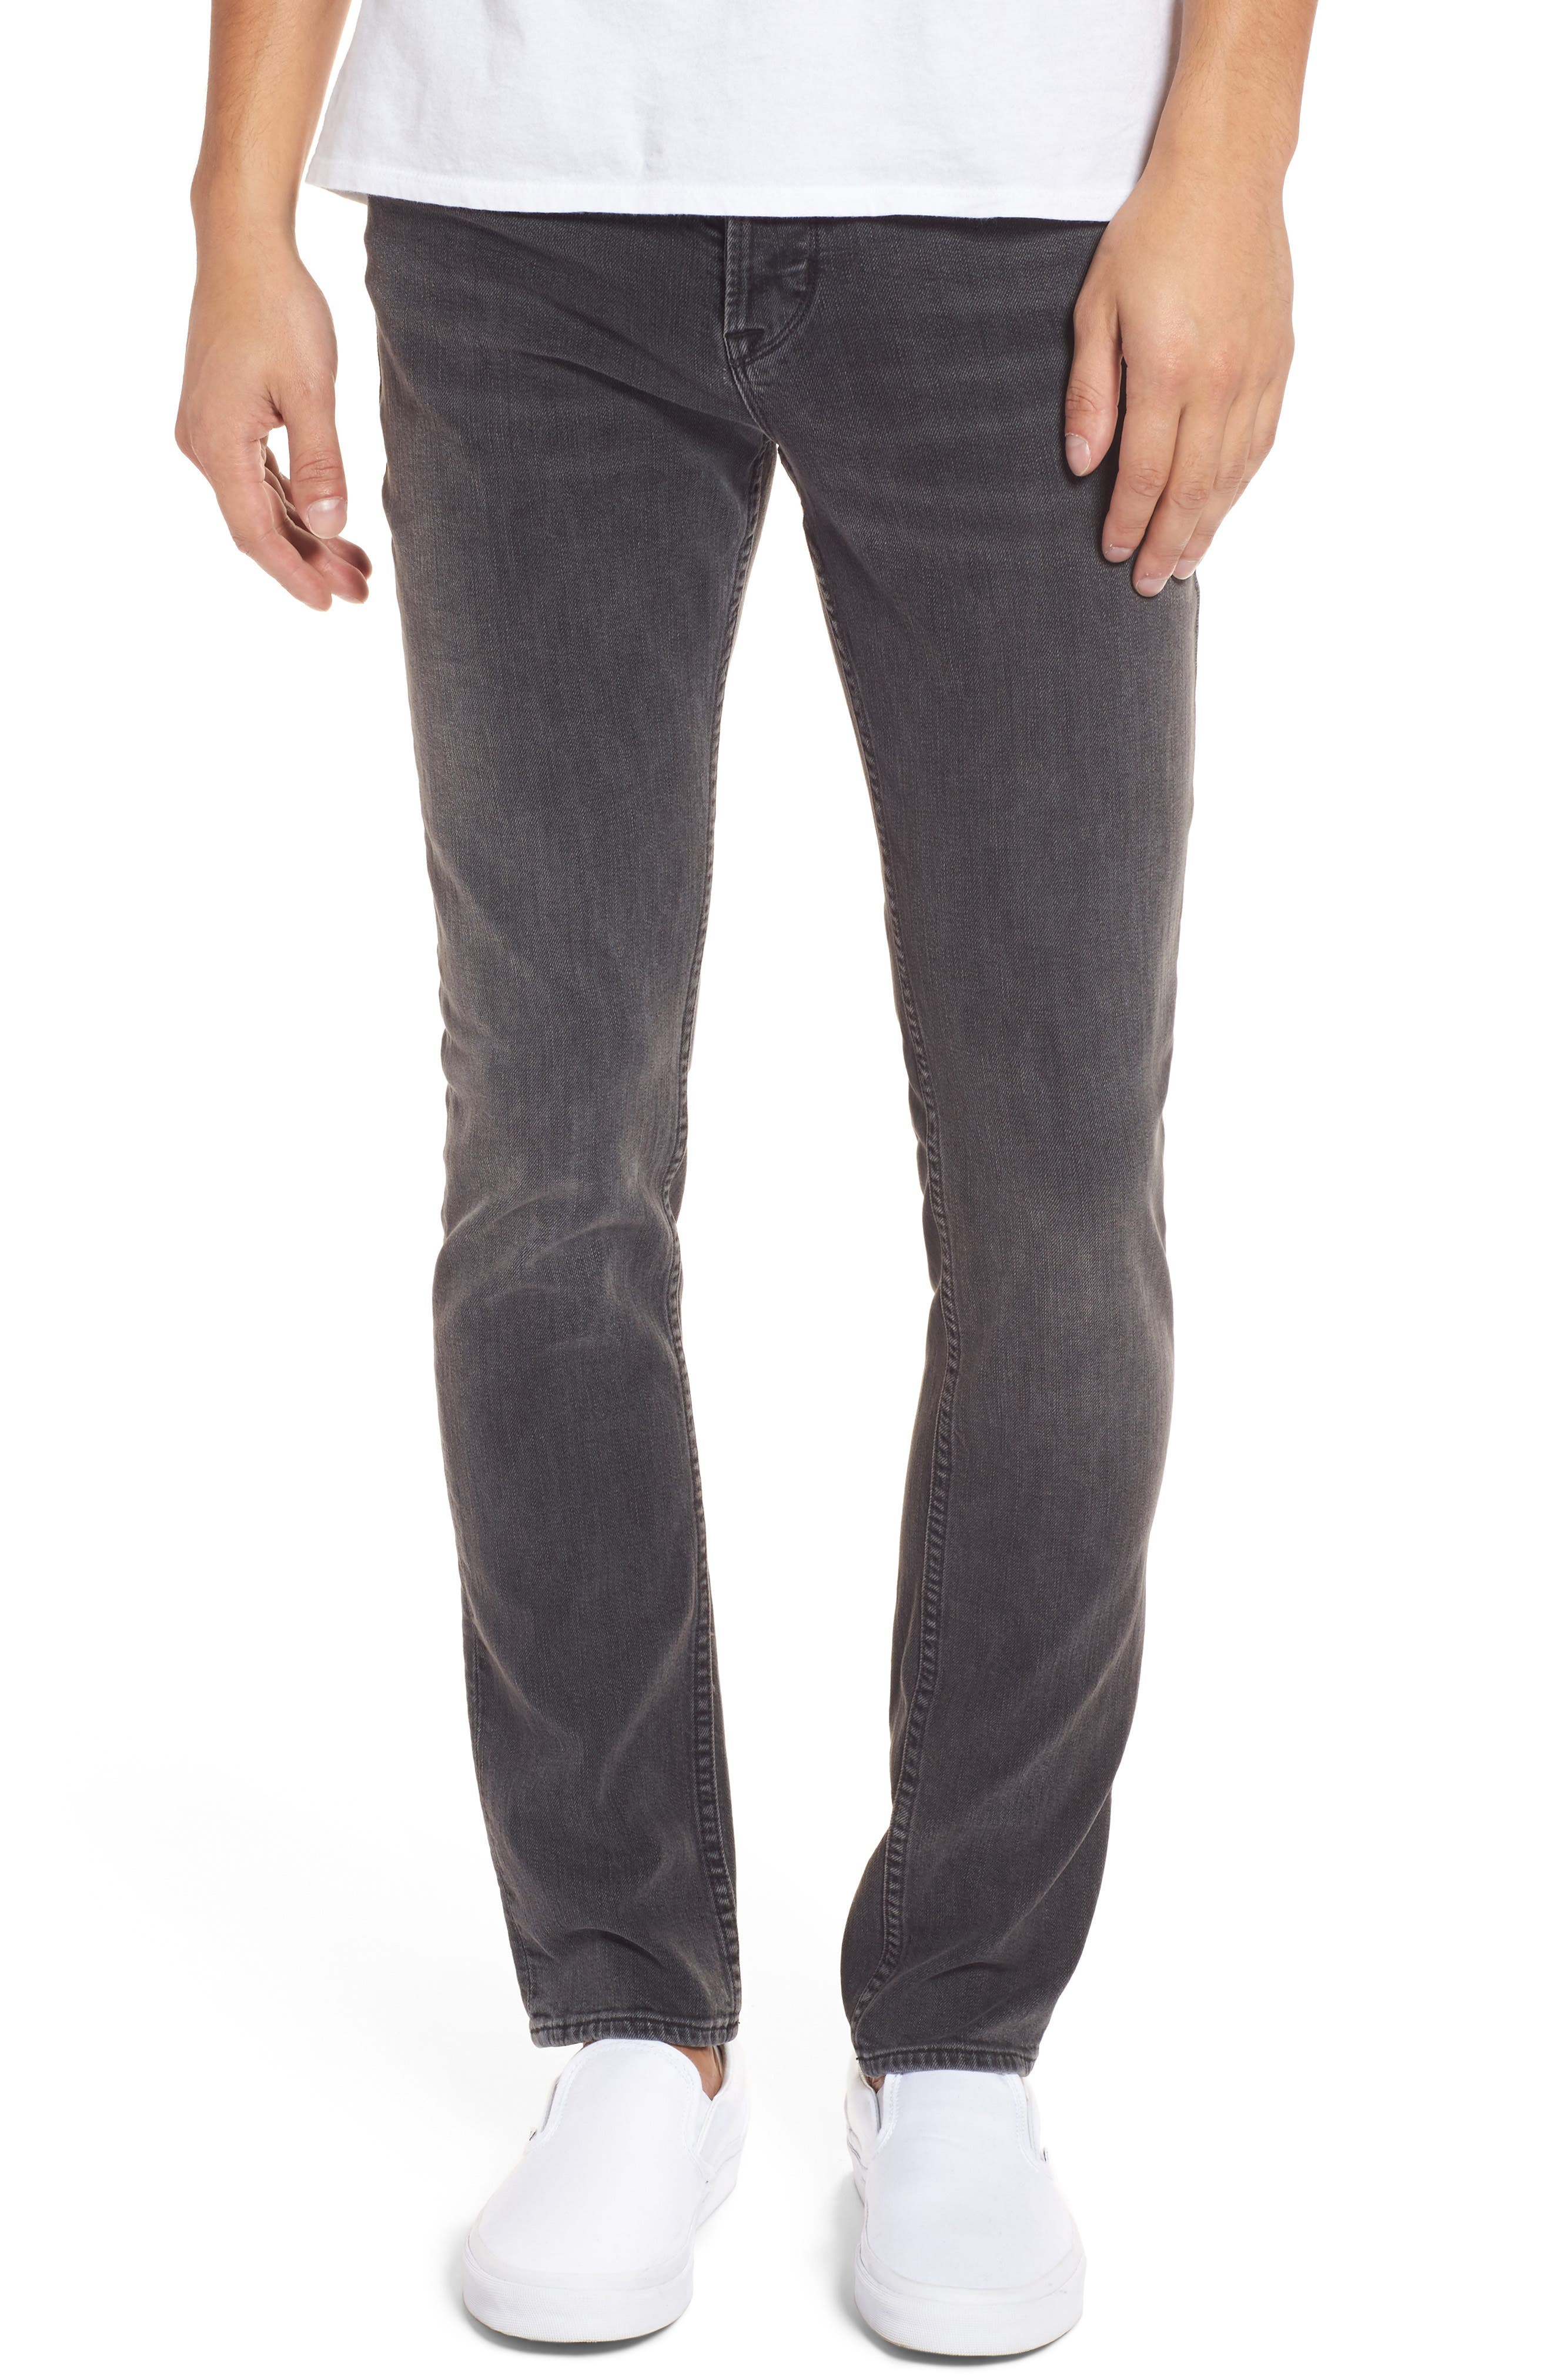 Axl Skinny Fit Jeans,                             Main thumbnail 1, color,                             Oxidize